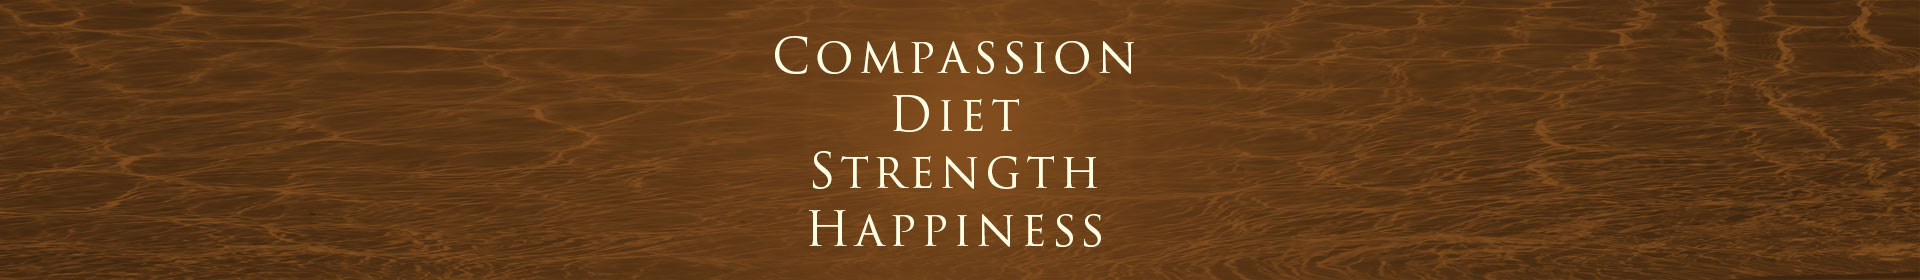 Compassion, Diet, Strength, Happiness